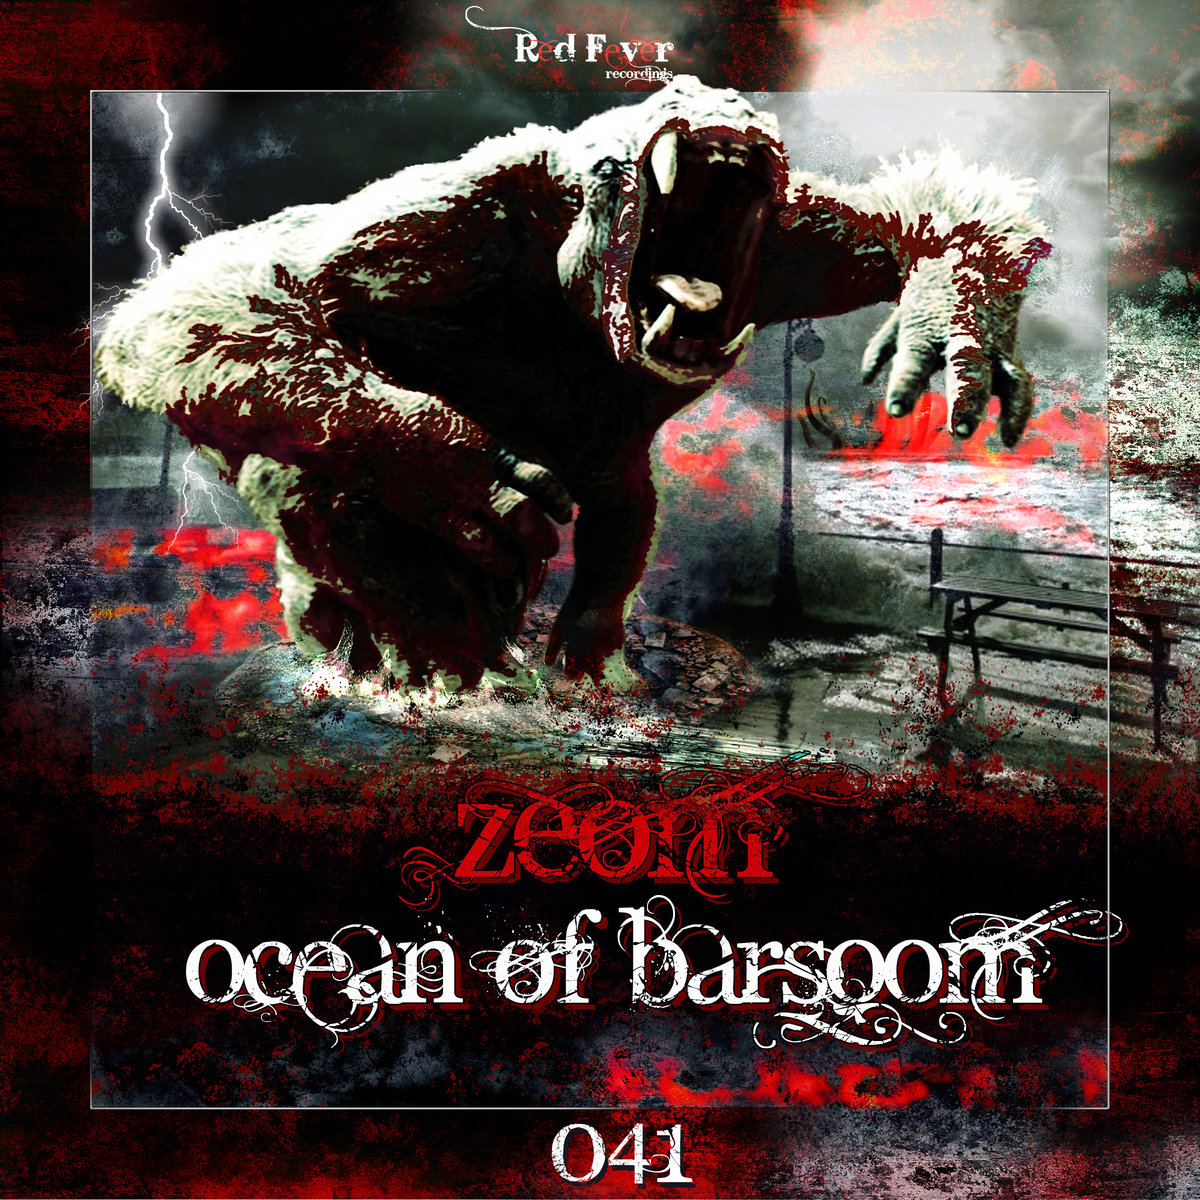 Zeom - Barsoom @ 'Ocean Of Barsoom' album (electronic, gabber)